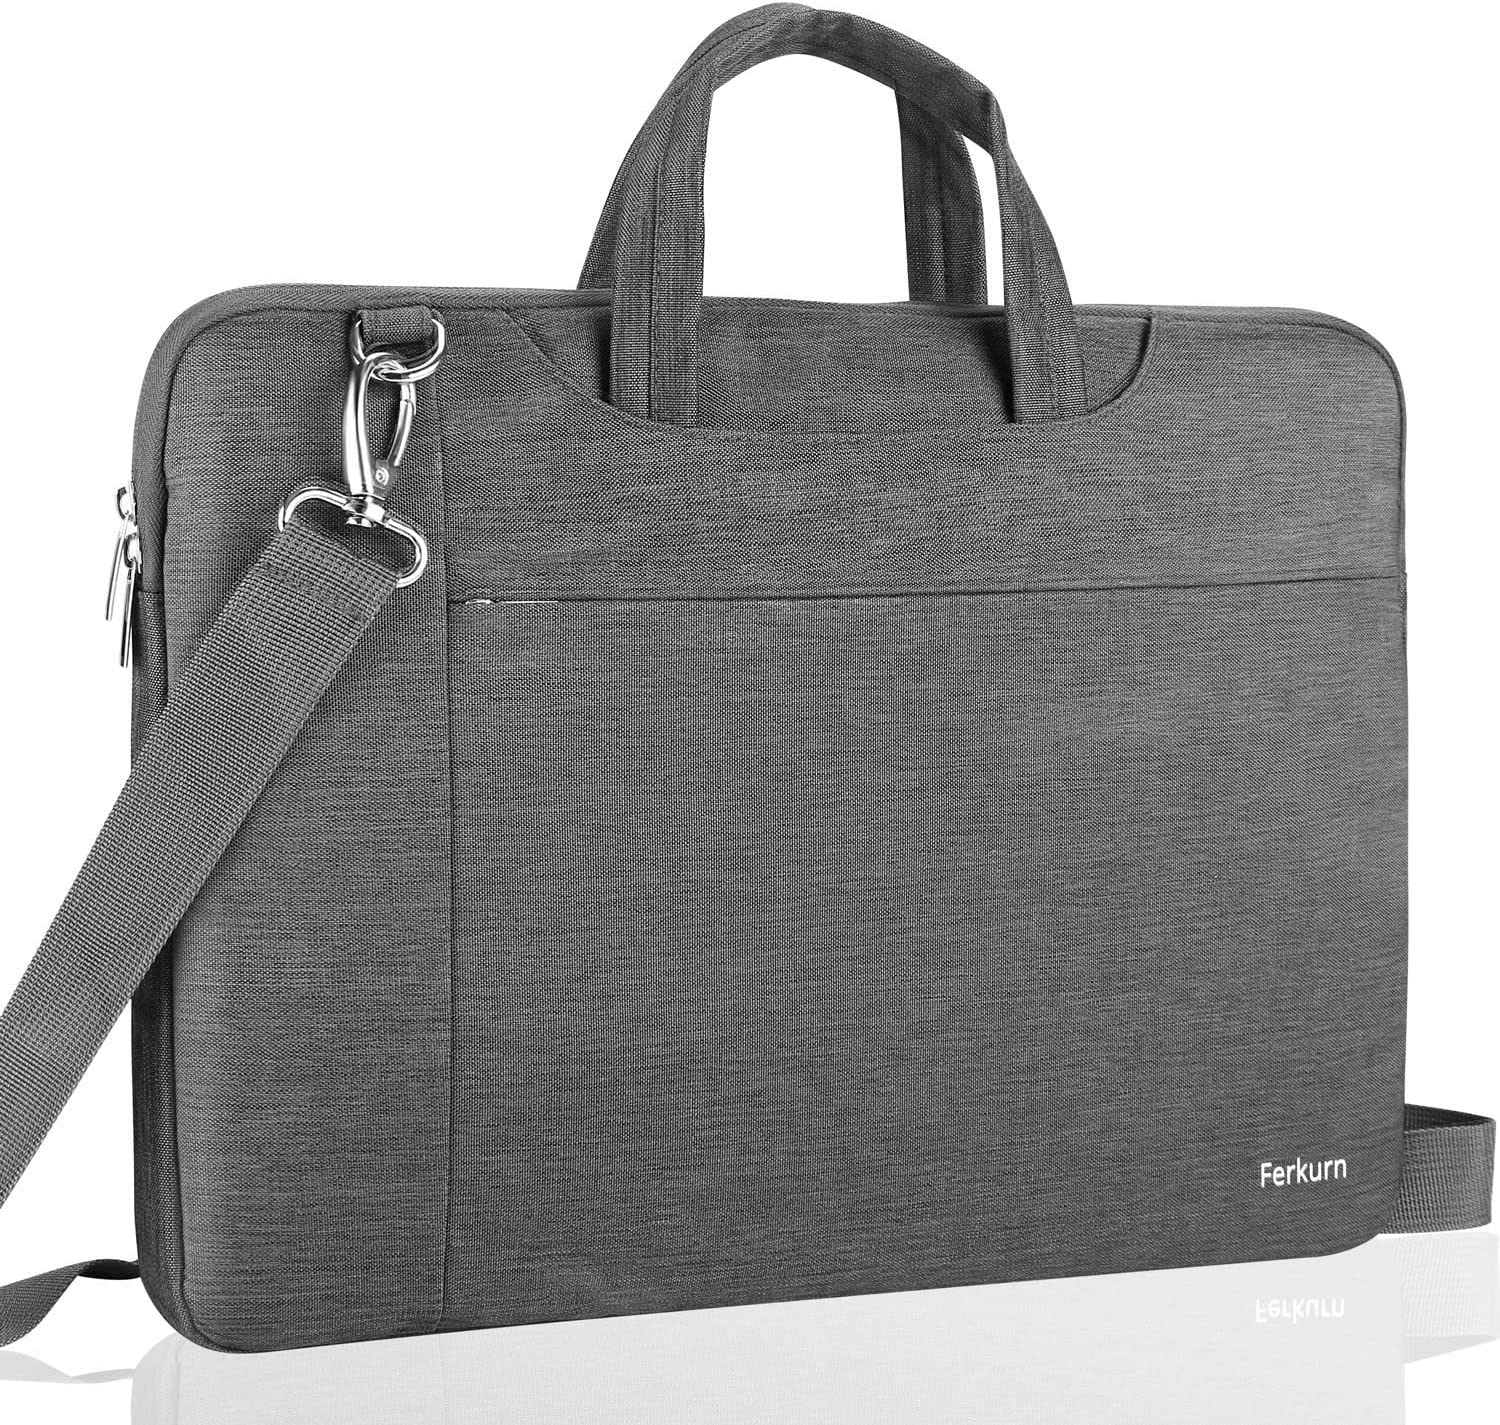 """Ferkurn 17 Inch Laptop Sleeve Waterproof with Handle Protective Shoulder Bag Notebook Computer Case Compatible with MacBook 17""""/ Acer 17.3""""/ ASUS/HP/Dell/Toshiba/Samsung/Sony/Microsoft,Gray"""